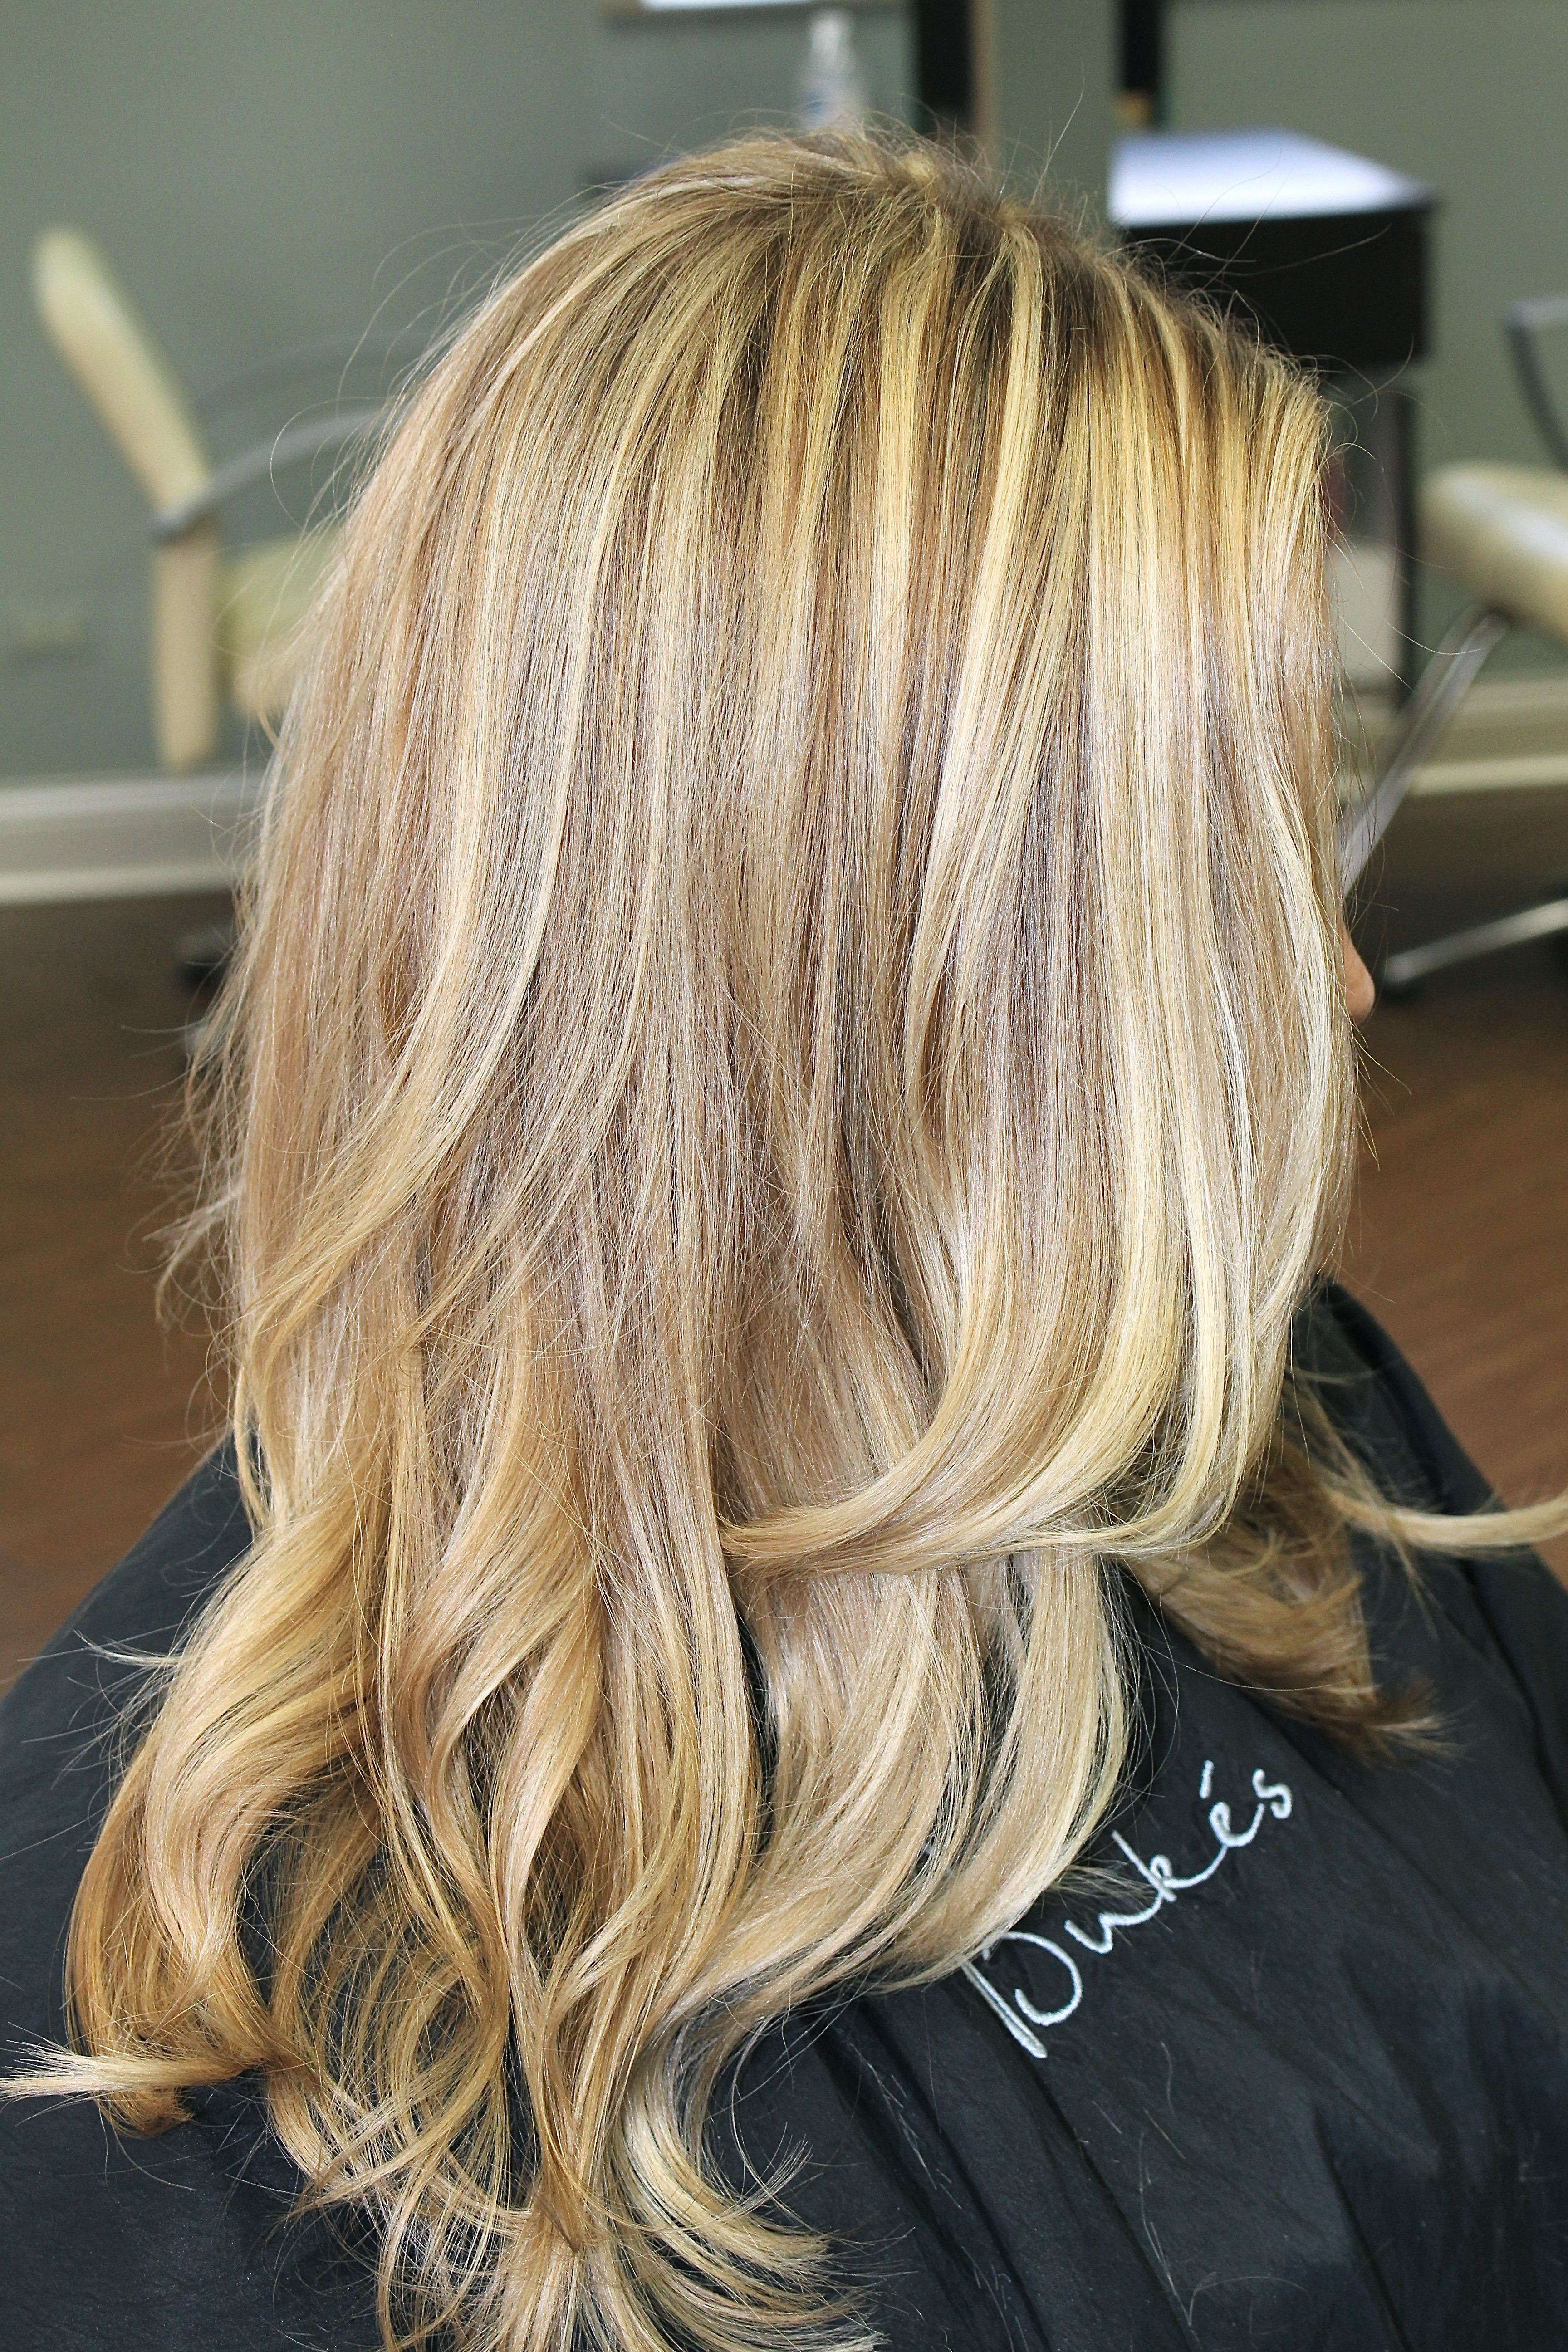 Golden Blonde Highlights on Jenny  Fashion  Pinterest  Golden blonde highlights Golden